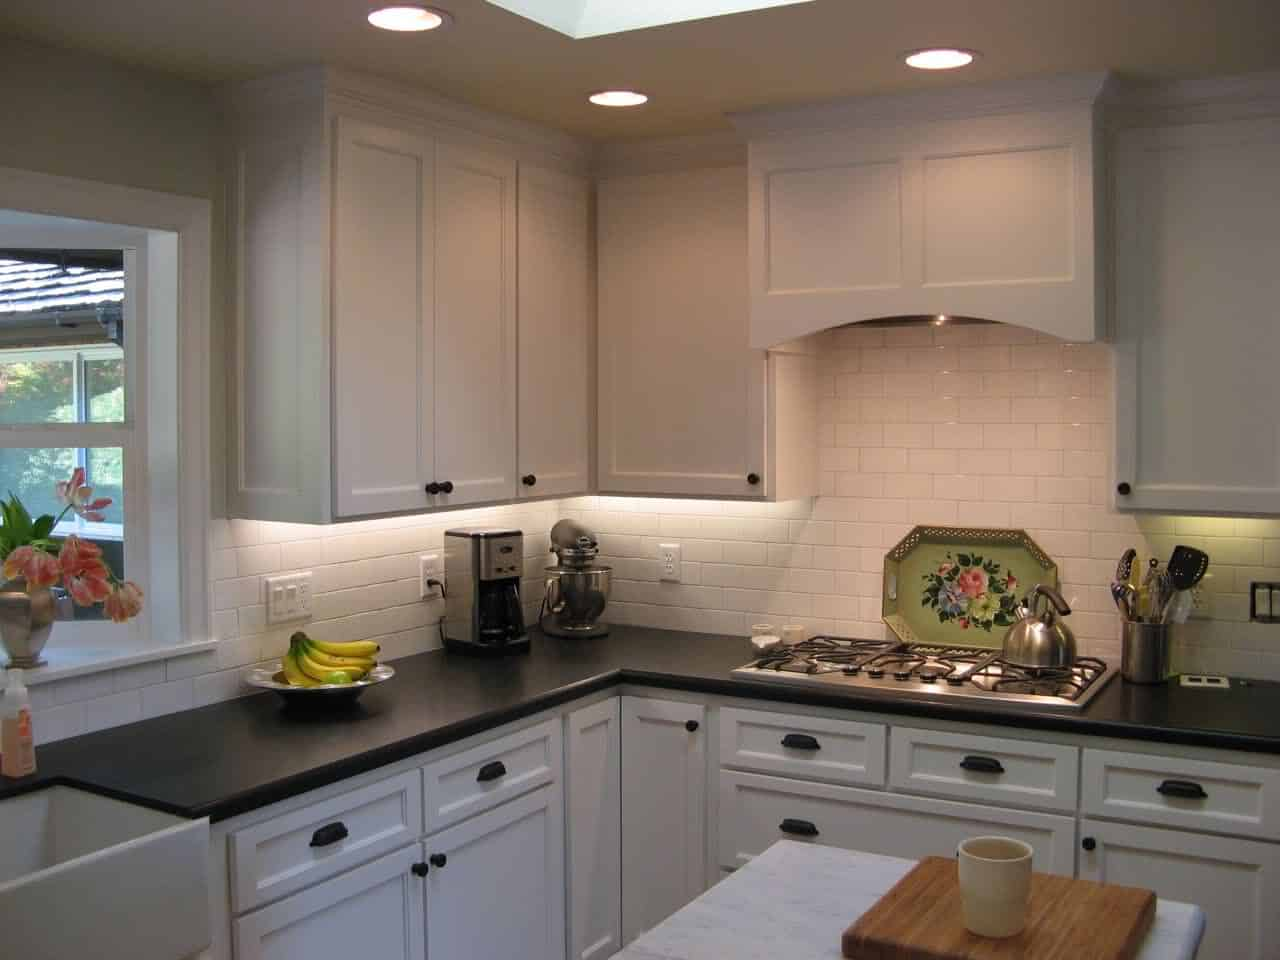 Tiles For Kitchen Image – Contemporary Tile Design Ideas From Around